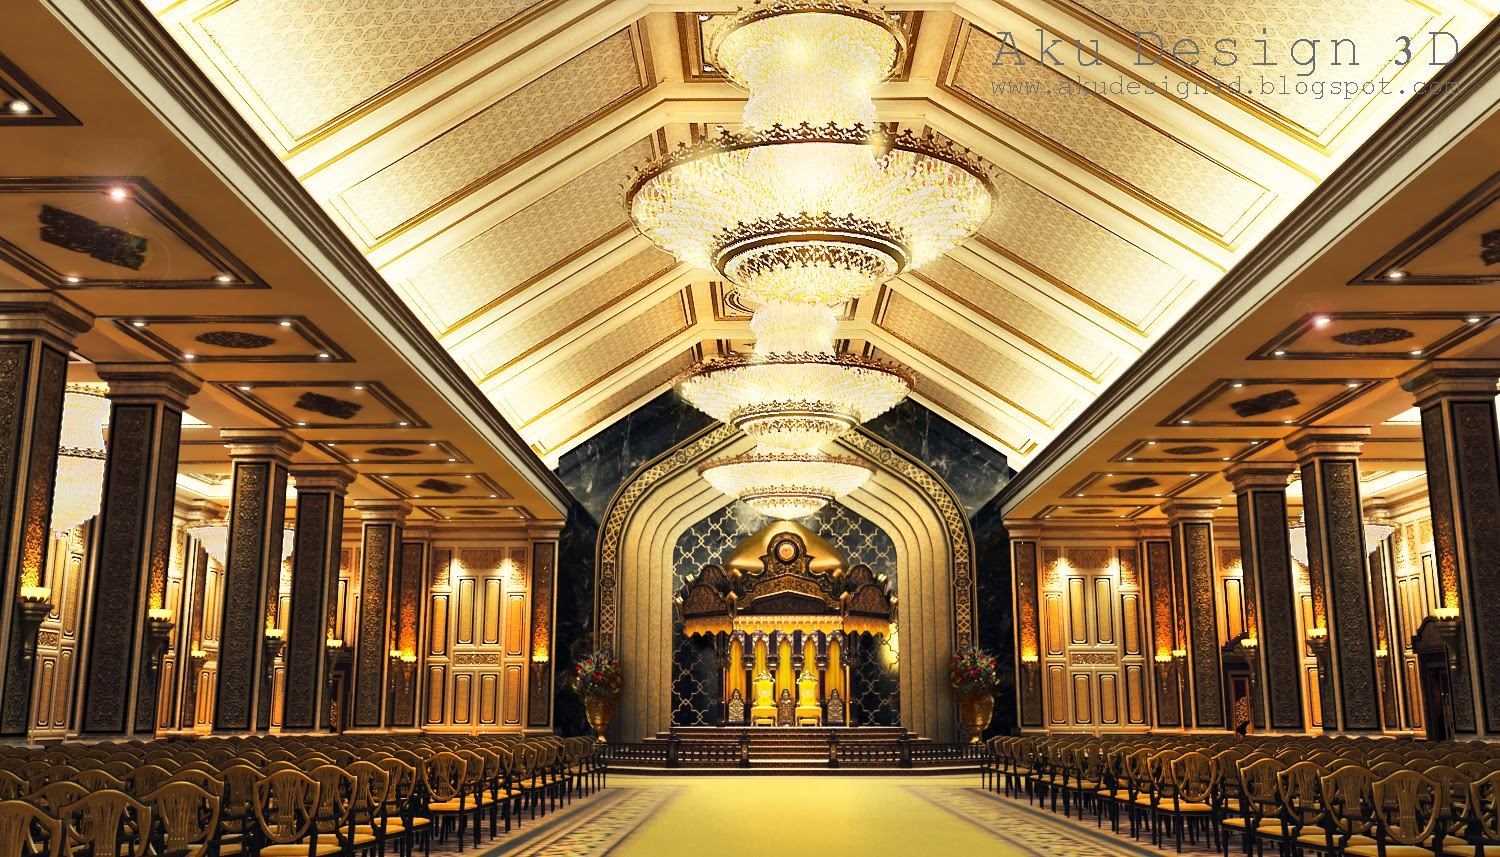 Aku design 3d istana negara jalan duta national palace for Duta villa interior design